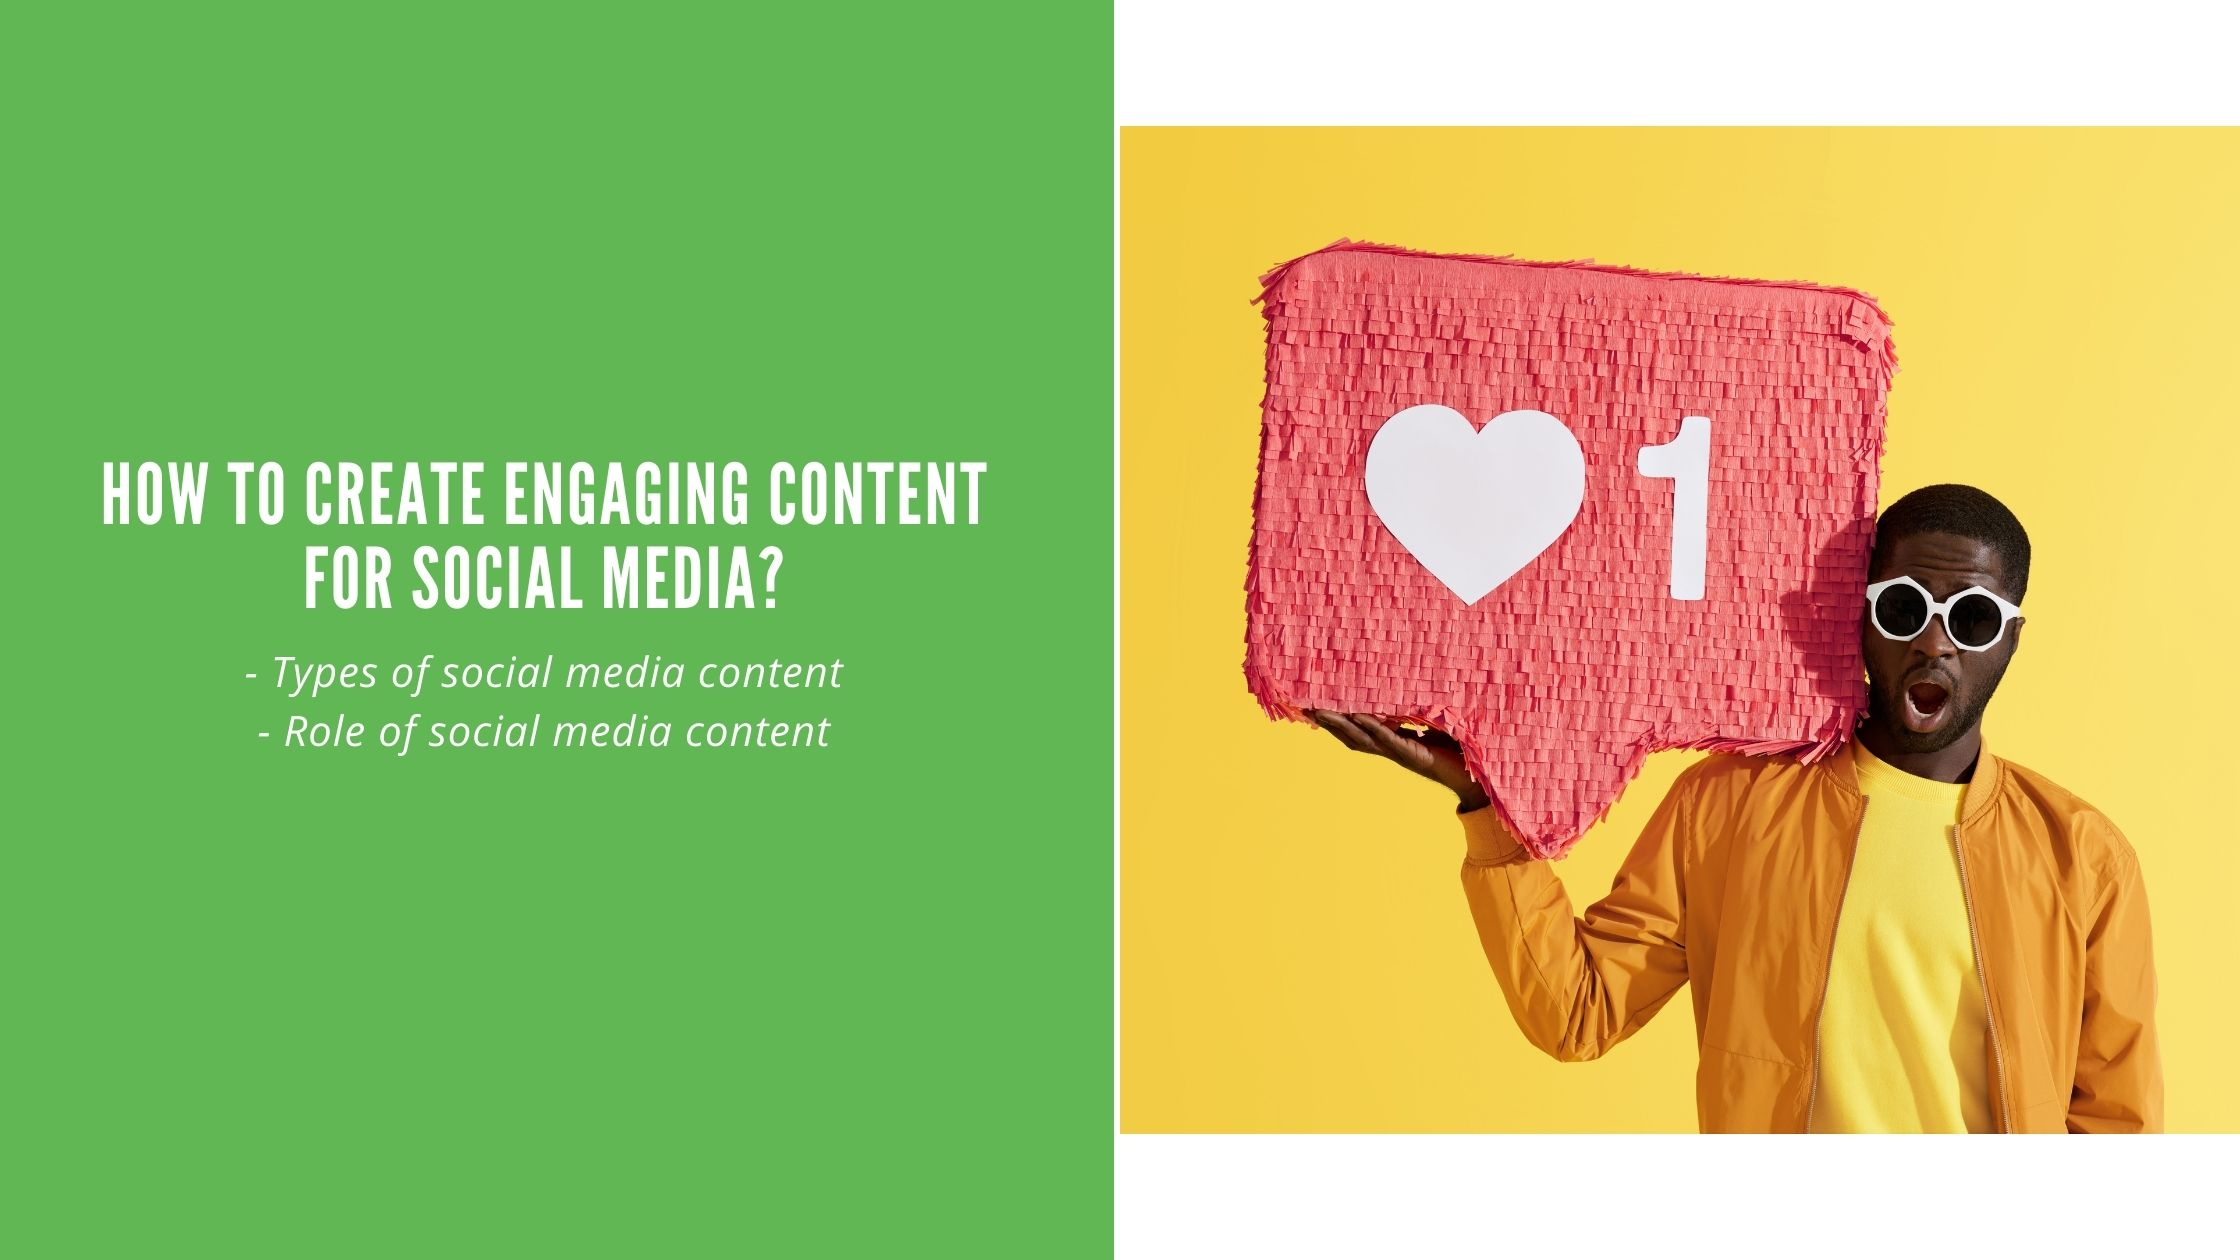 How to create engaging content for social media?